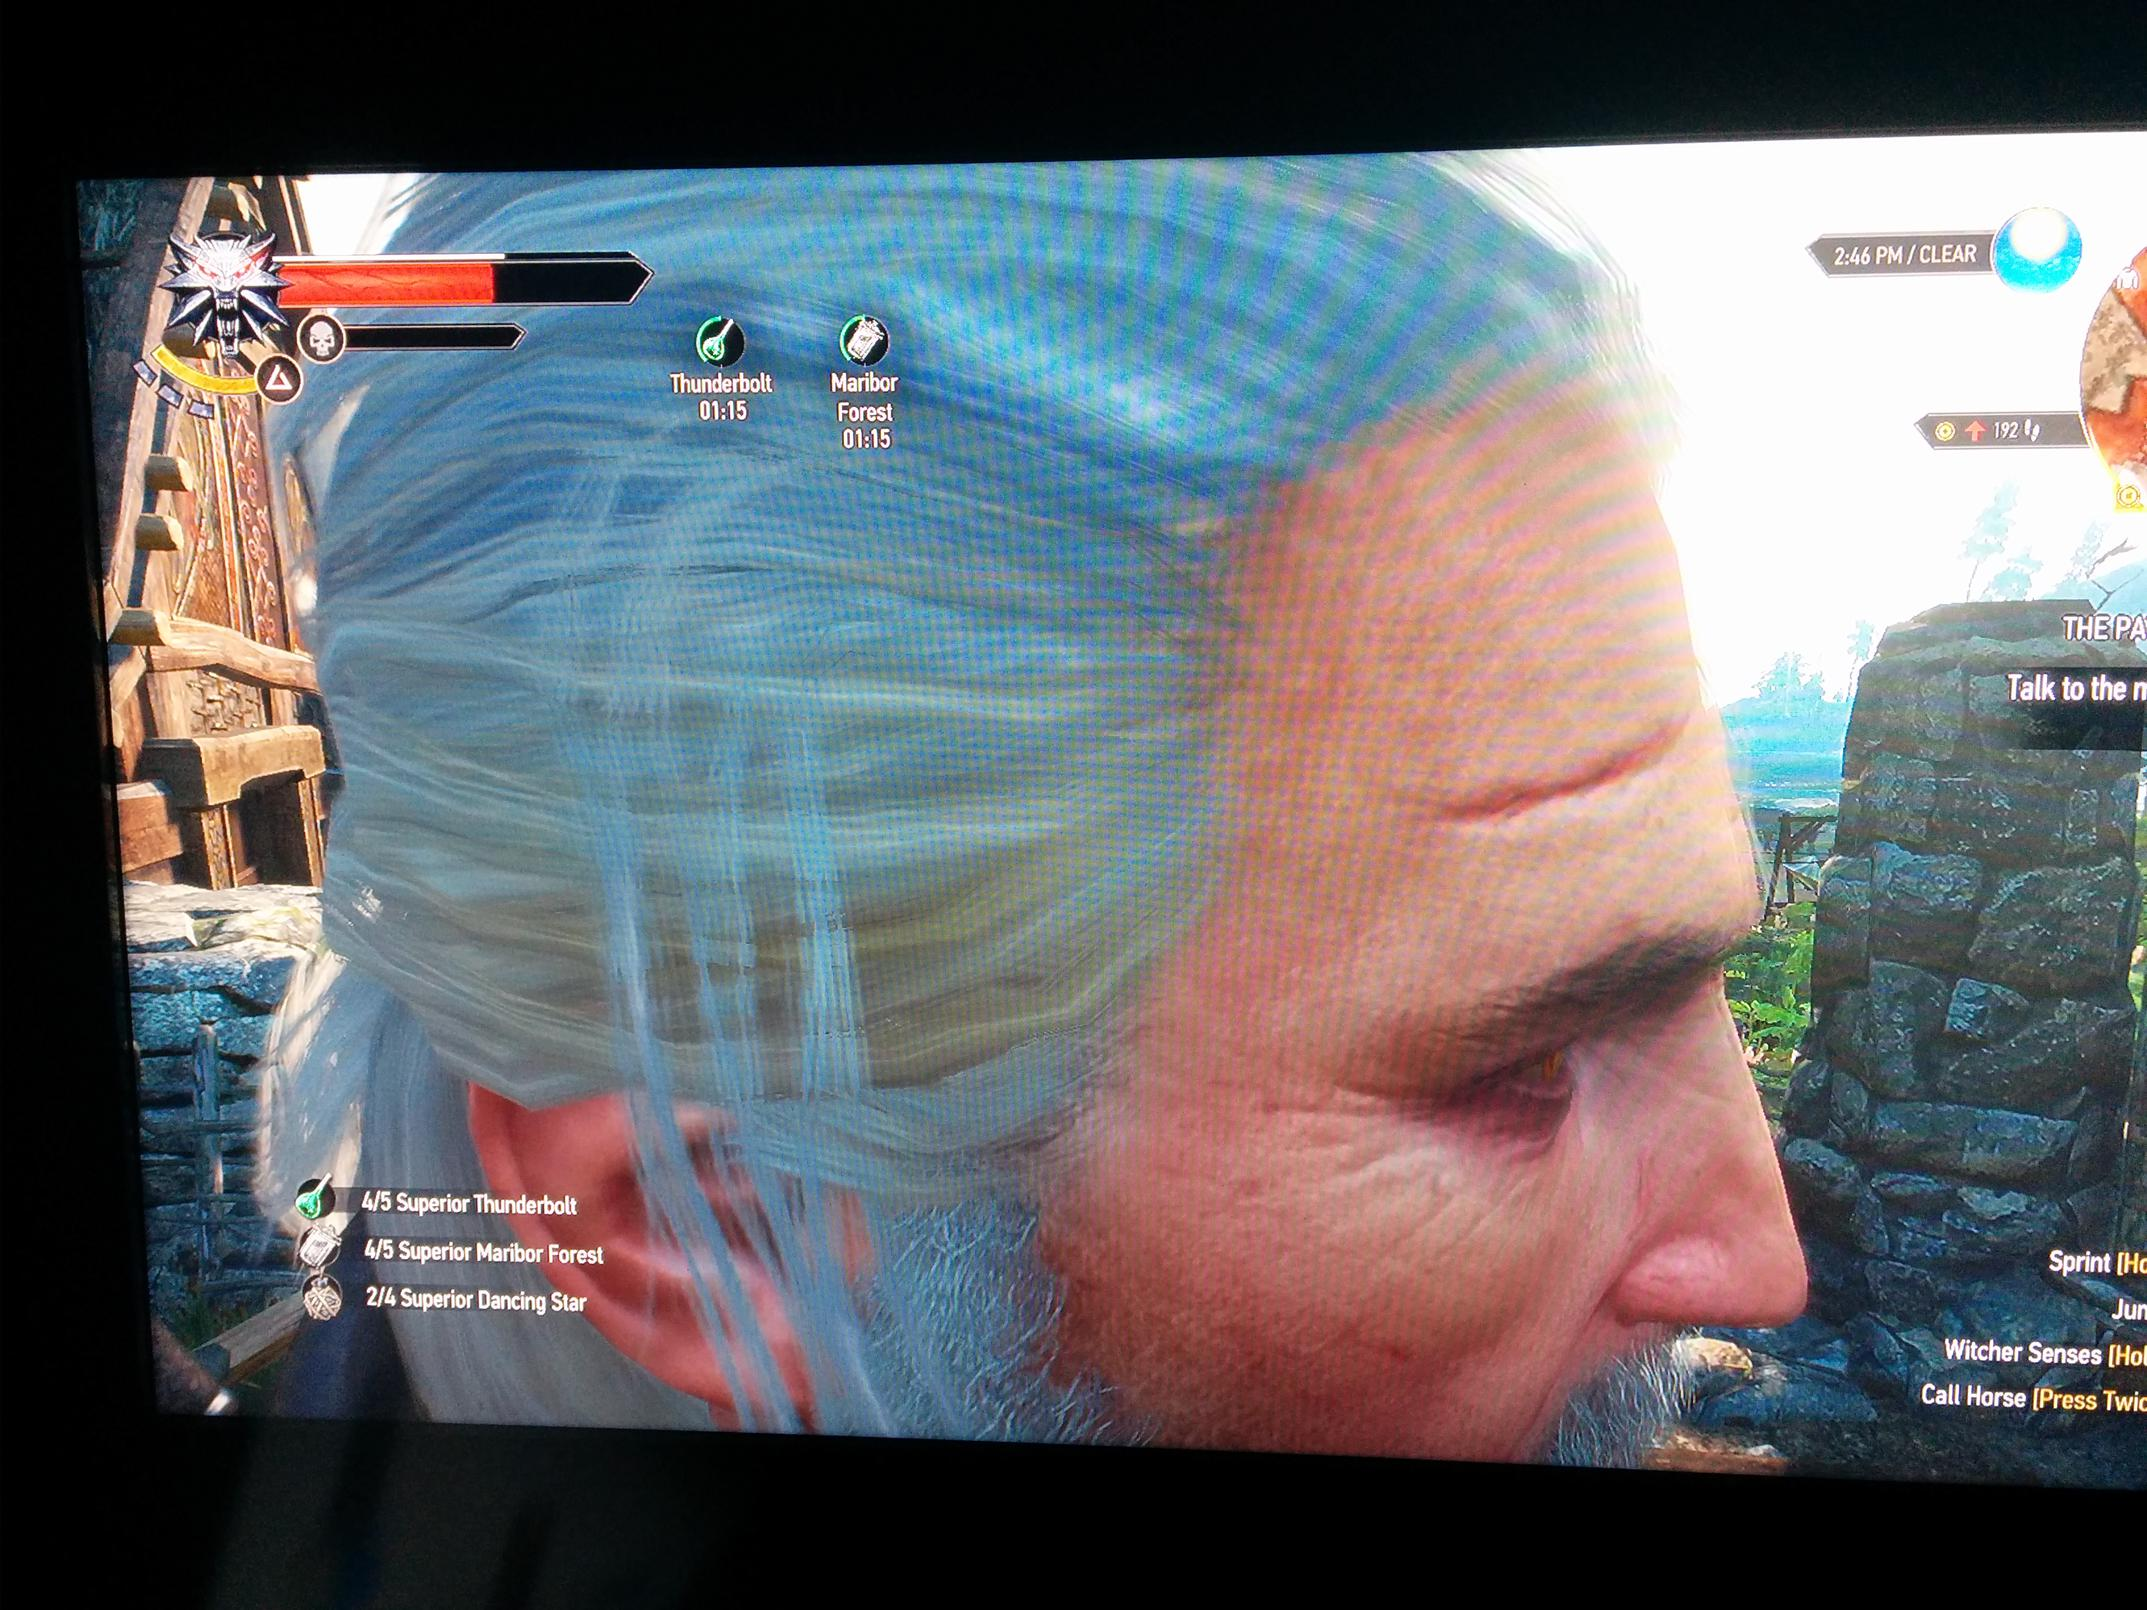 Bug] Camera Stuck Zoomed in on Geralt's Head | Forums - CD PROJEKT RED